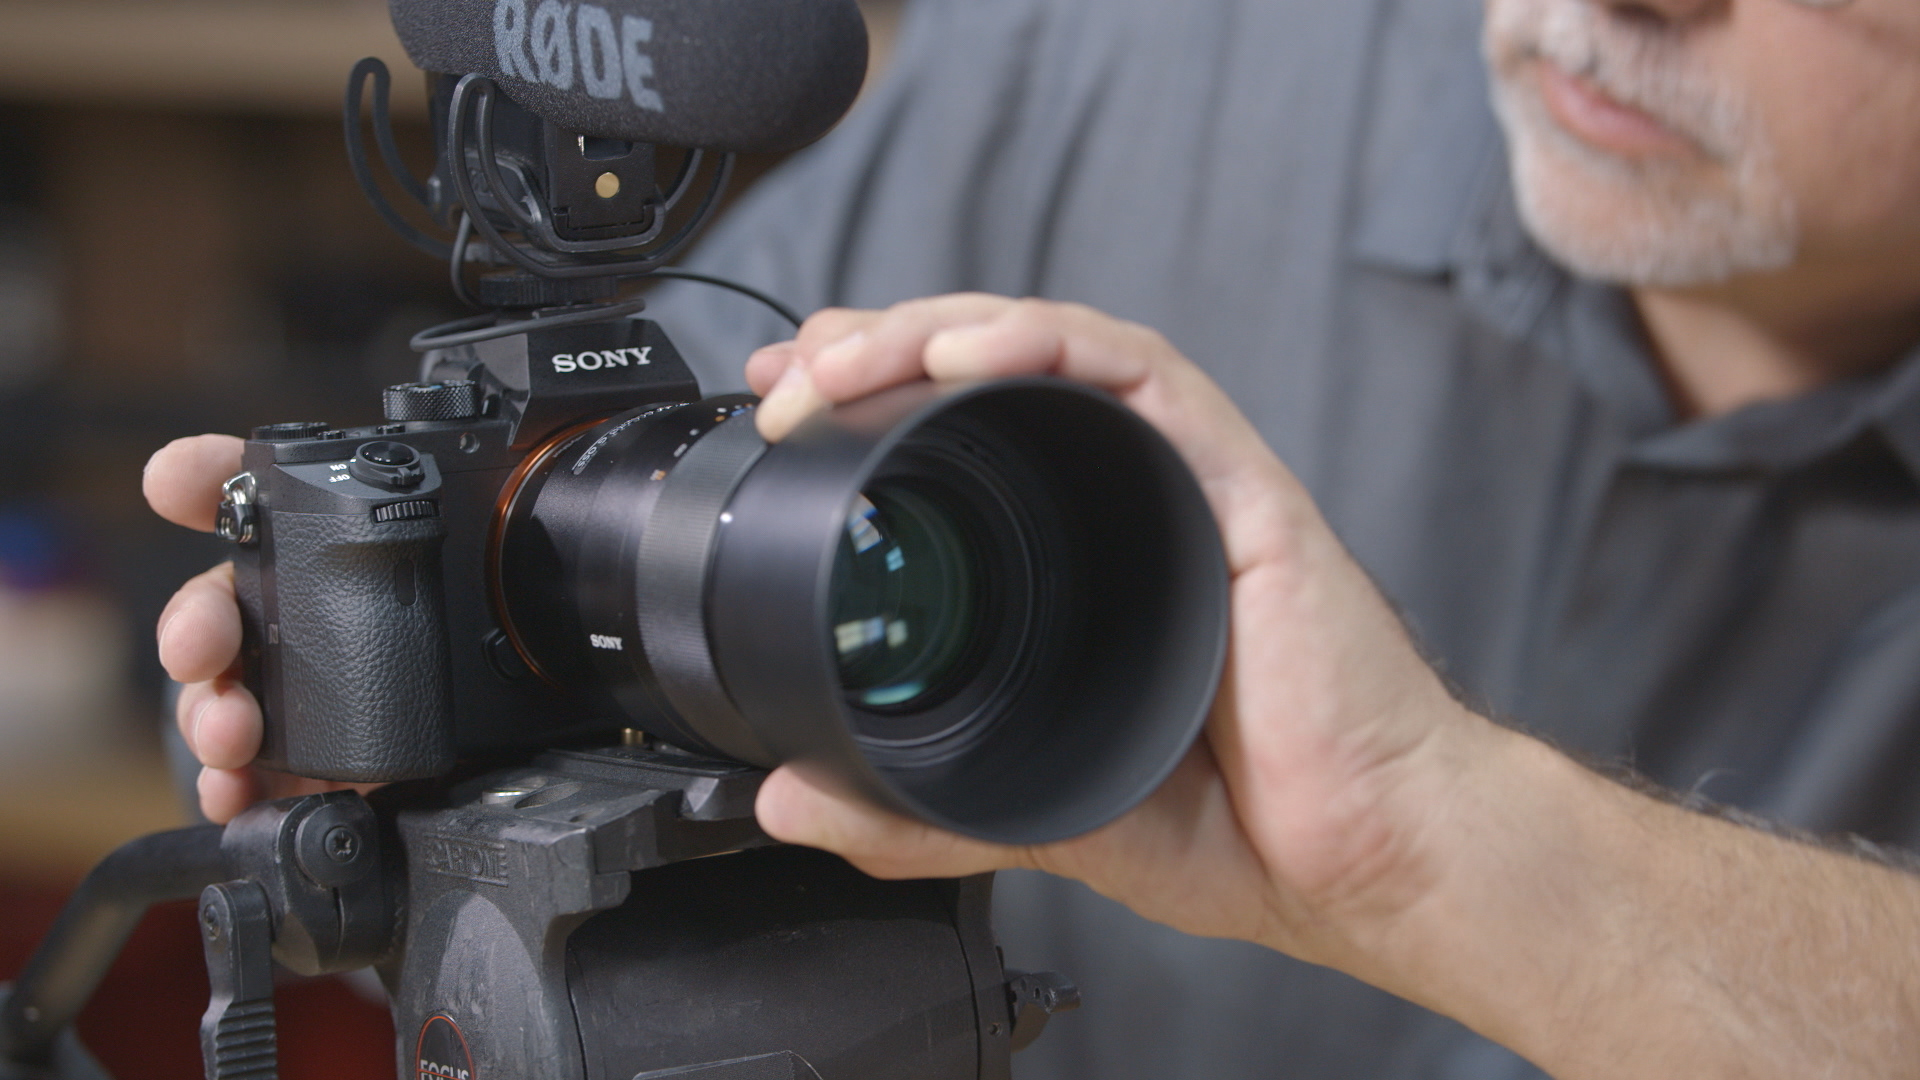 Welcome: What Video Camera Should I Buy?